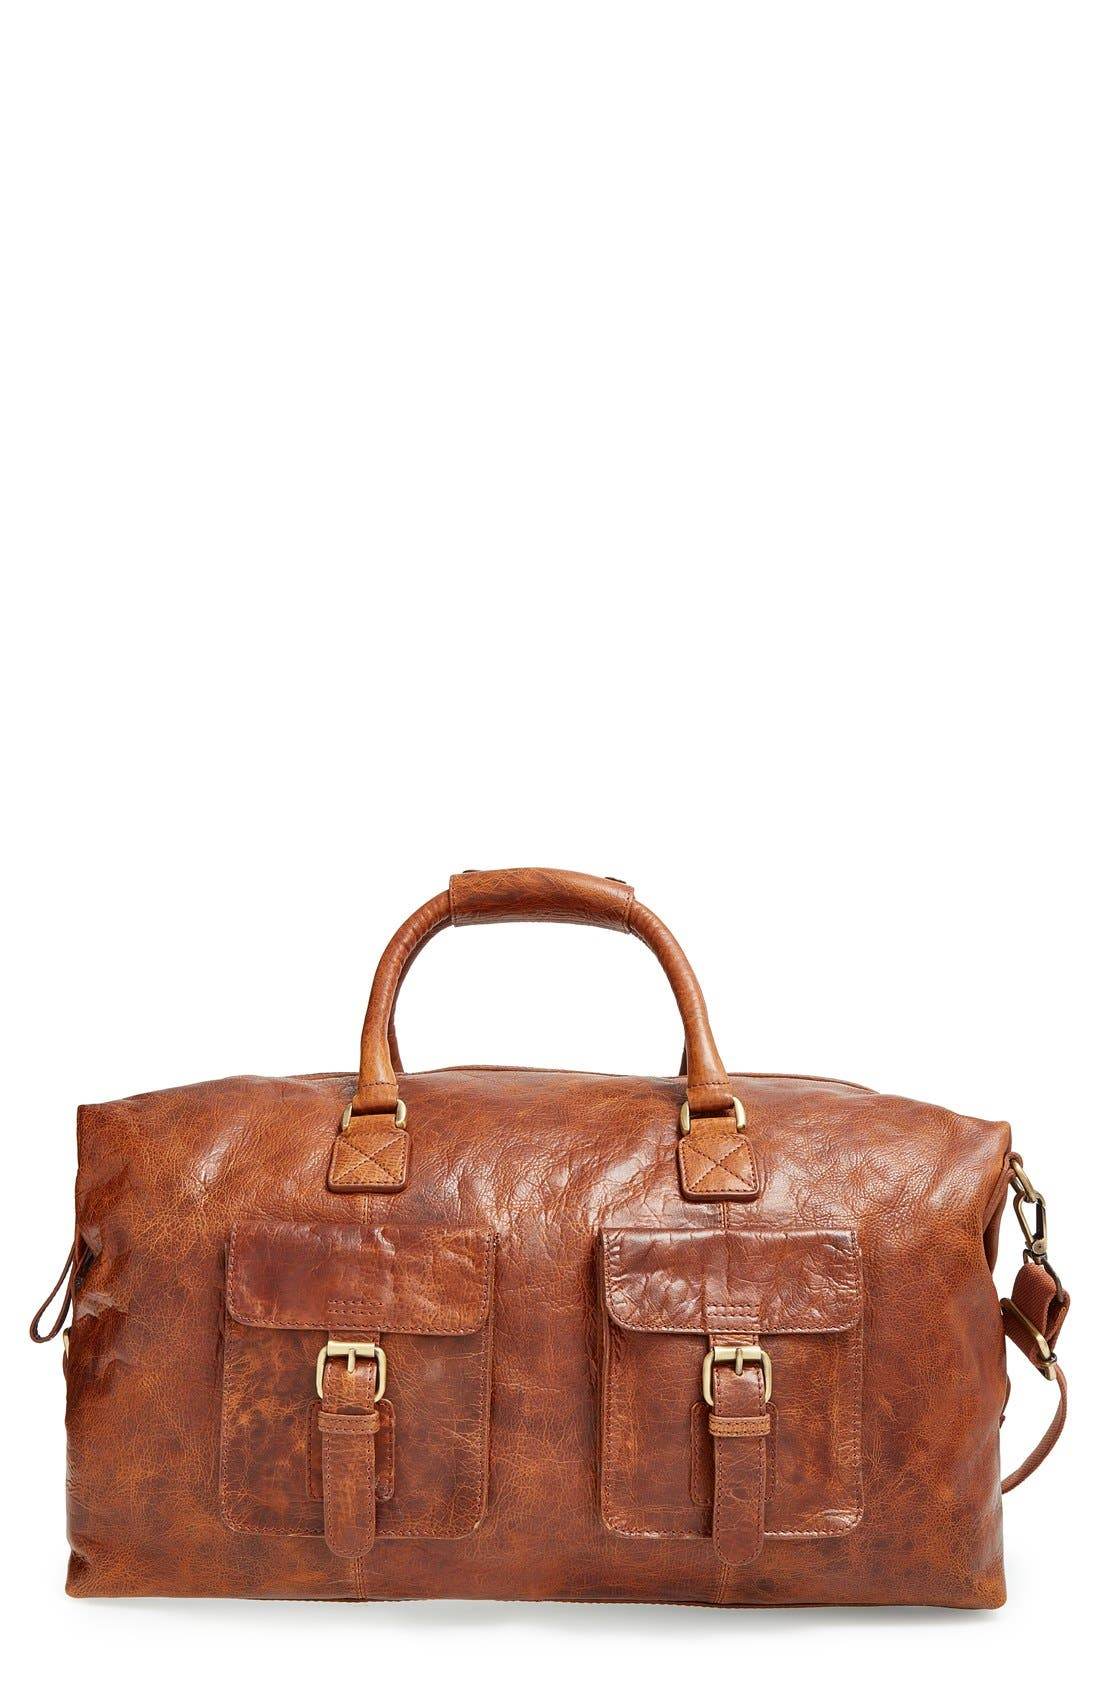 'Rugged' Leather Duffel Bag,                         Main,                         color, Cognac